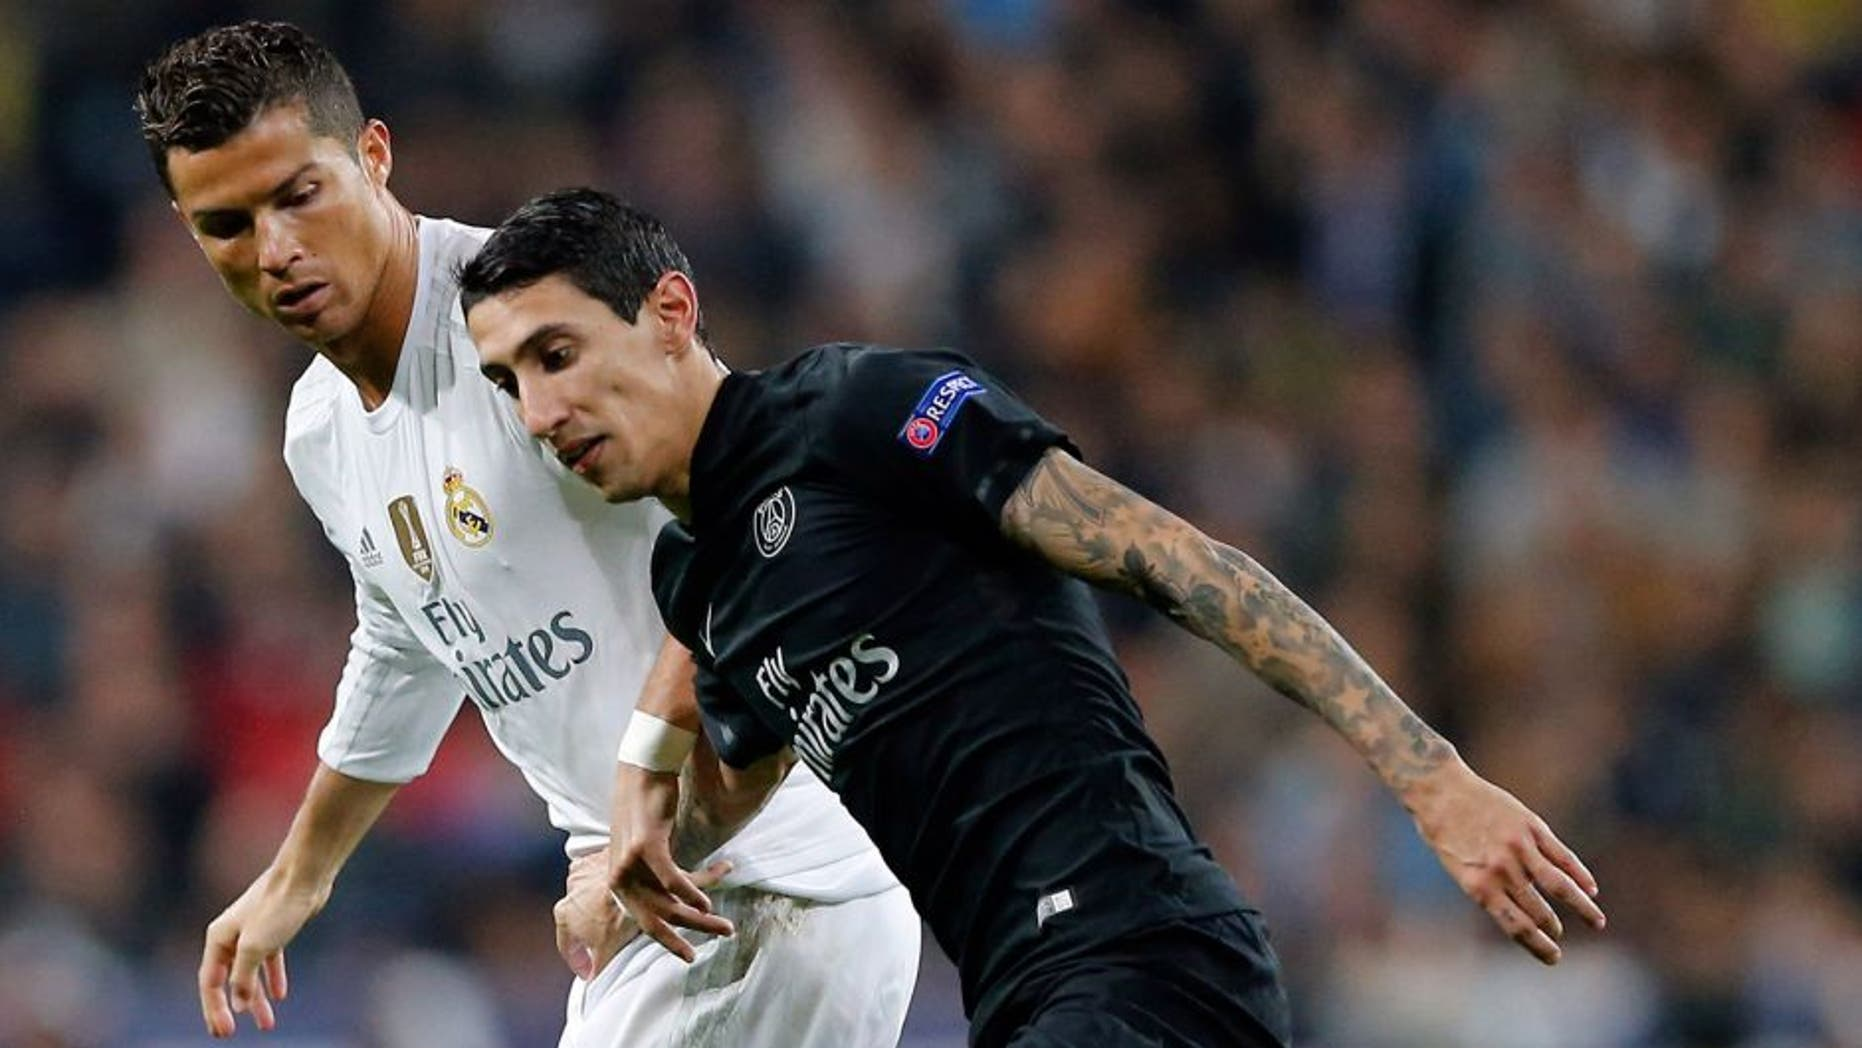 MADRID, SPAIN - NOVEMBER 03: Cristiano Ronaldo (L) of Real Madrid and Angel Di Maria of PSG compete for the ball during the UEFA Champions League Group A match between Real Madrid and Paris Saint-Germain at Estadio Santiago Bernabeu on November 3, 2015 in Madrid, Spain. (Photo by Helios de la Rubia/Real Madrid via Getty Images)